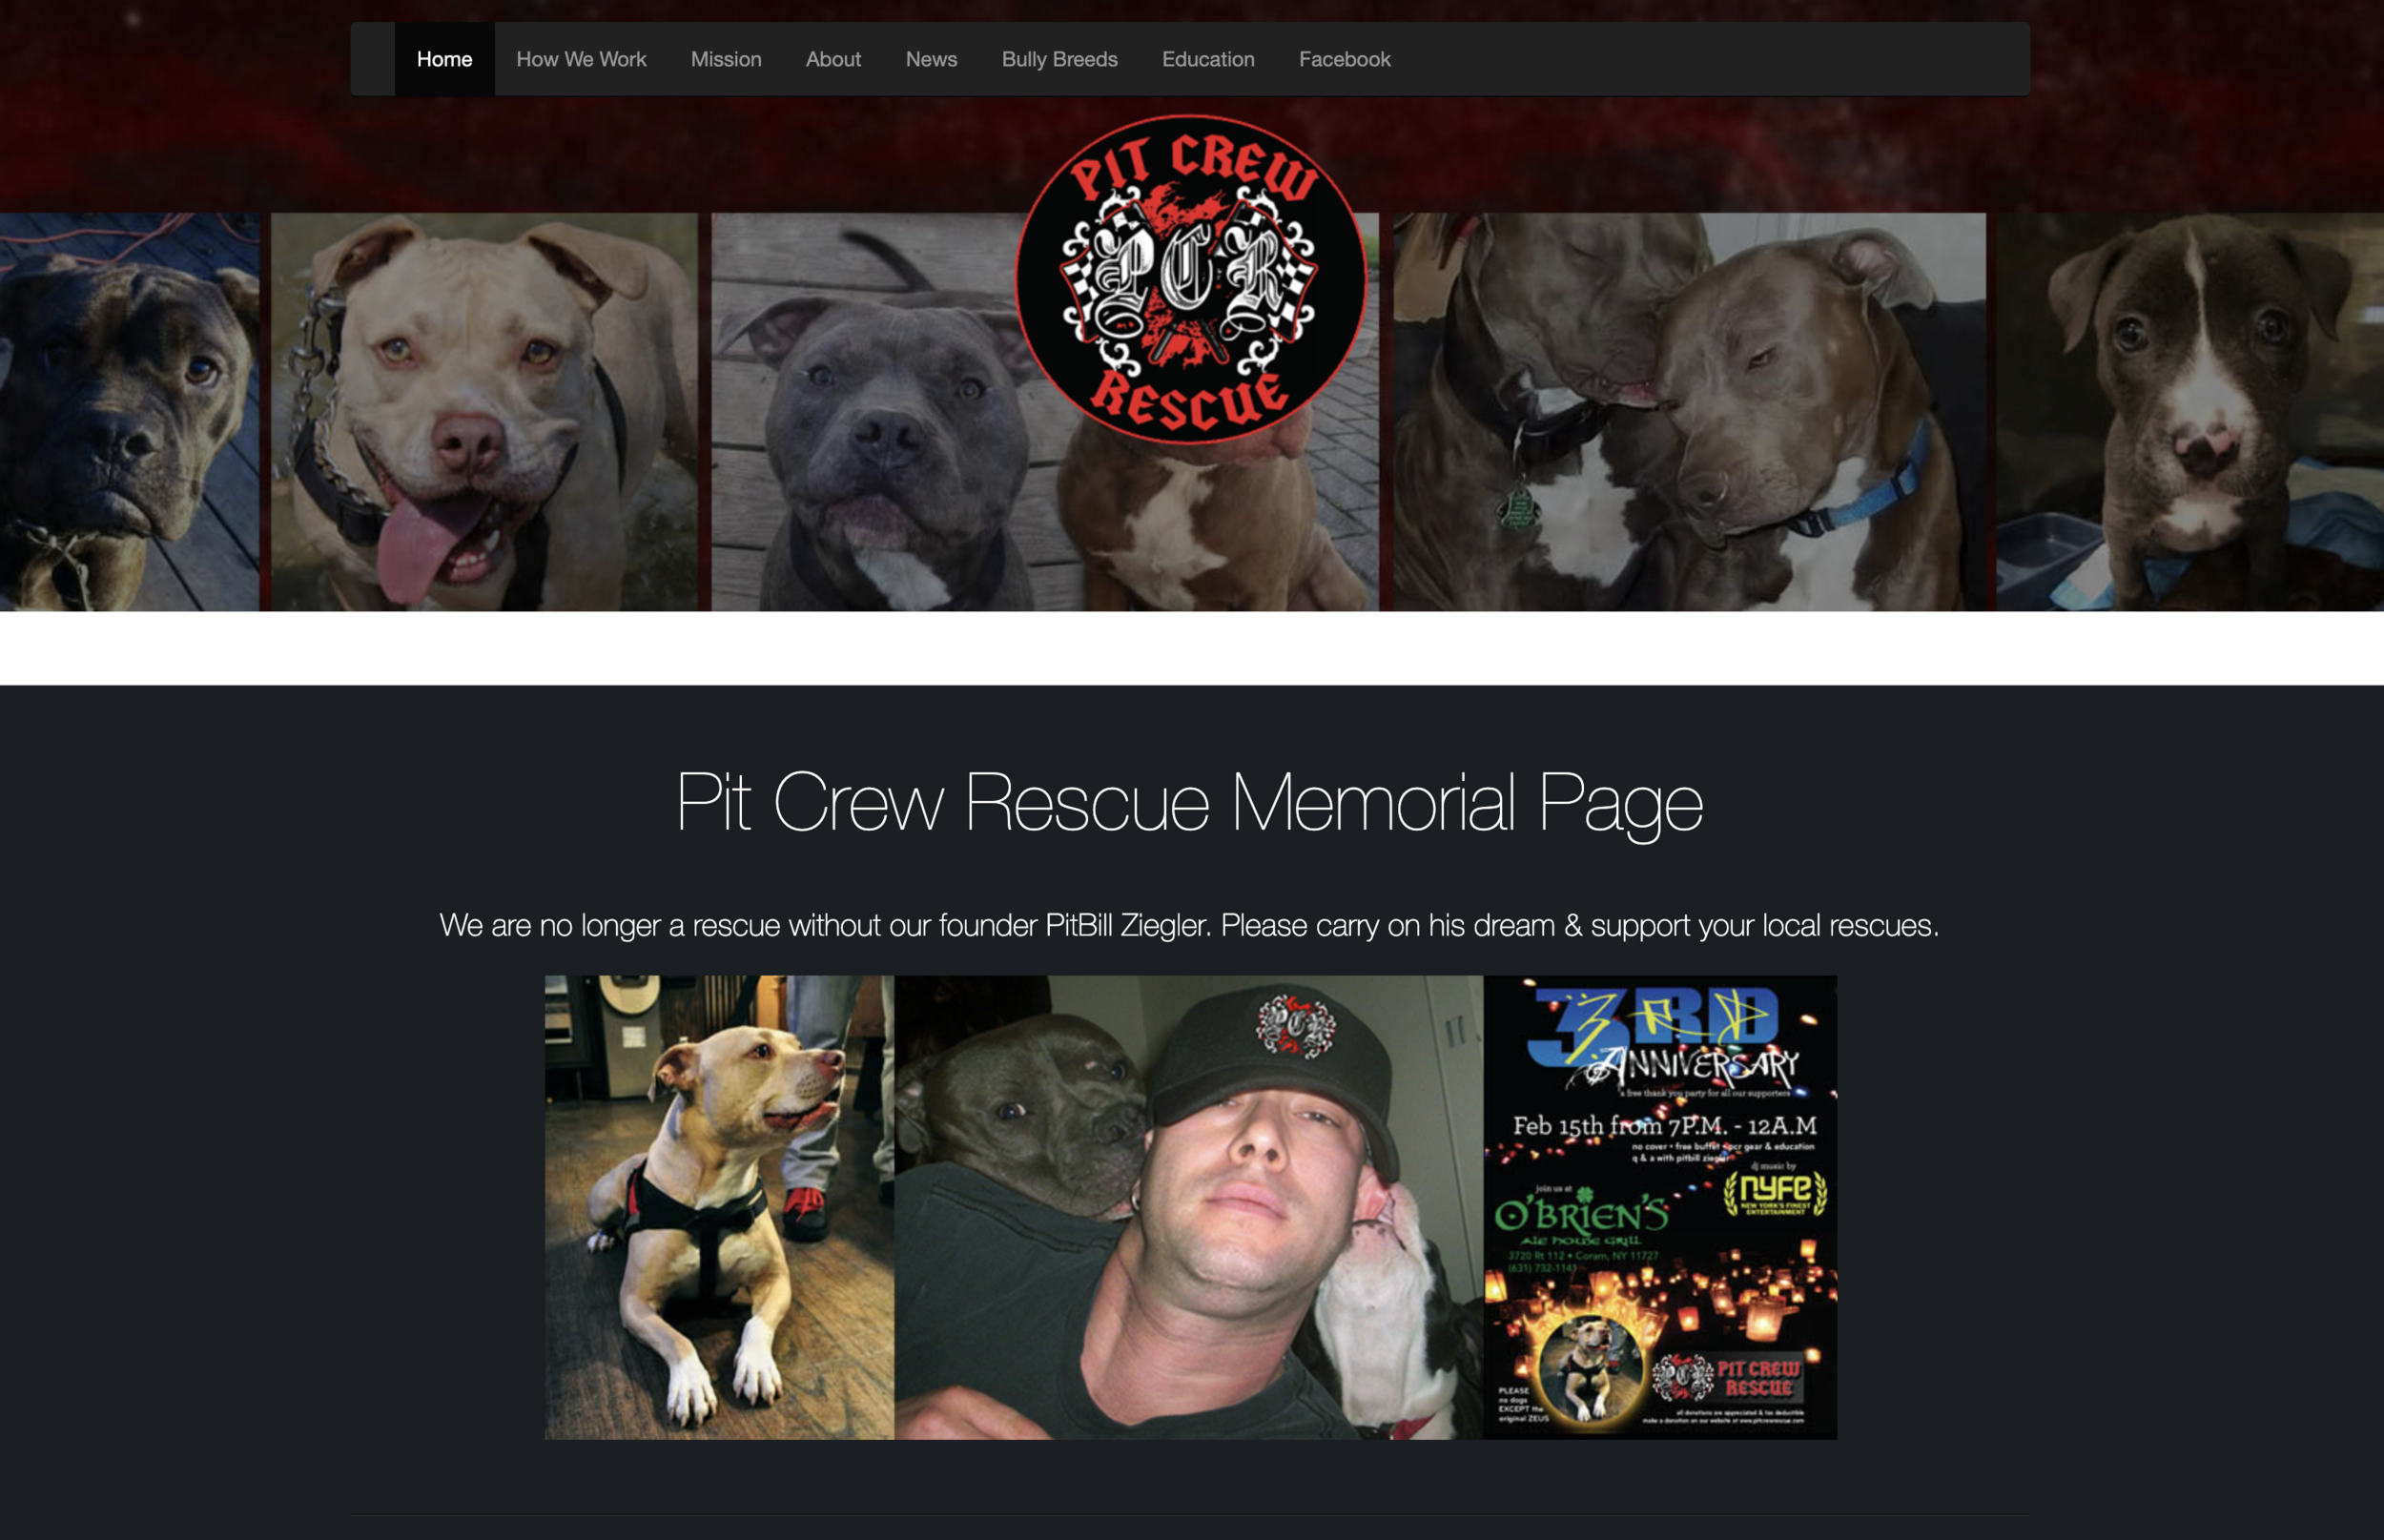 www.pitcrewrescue.com